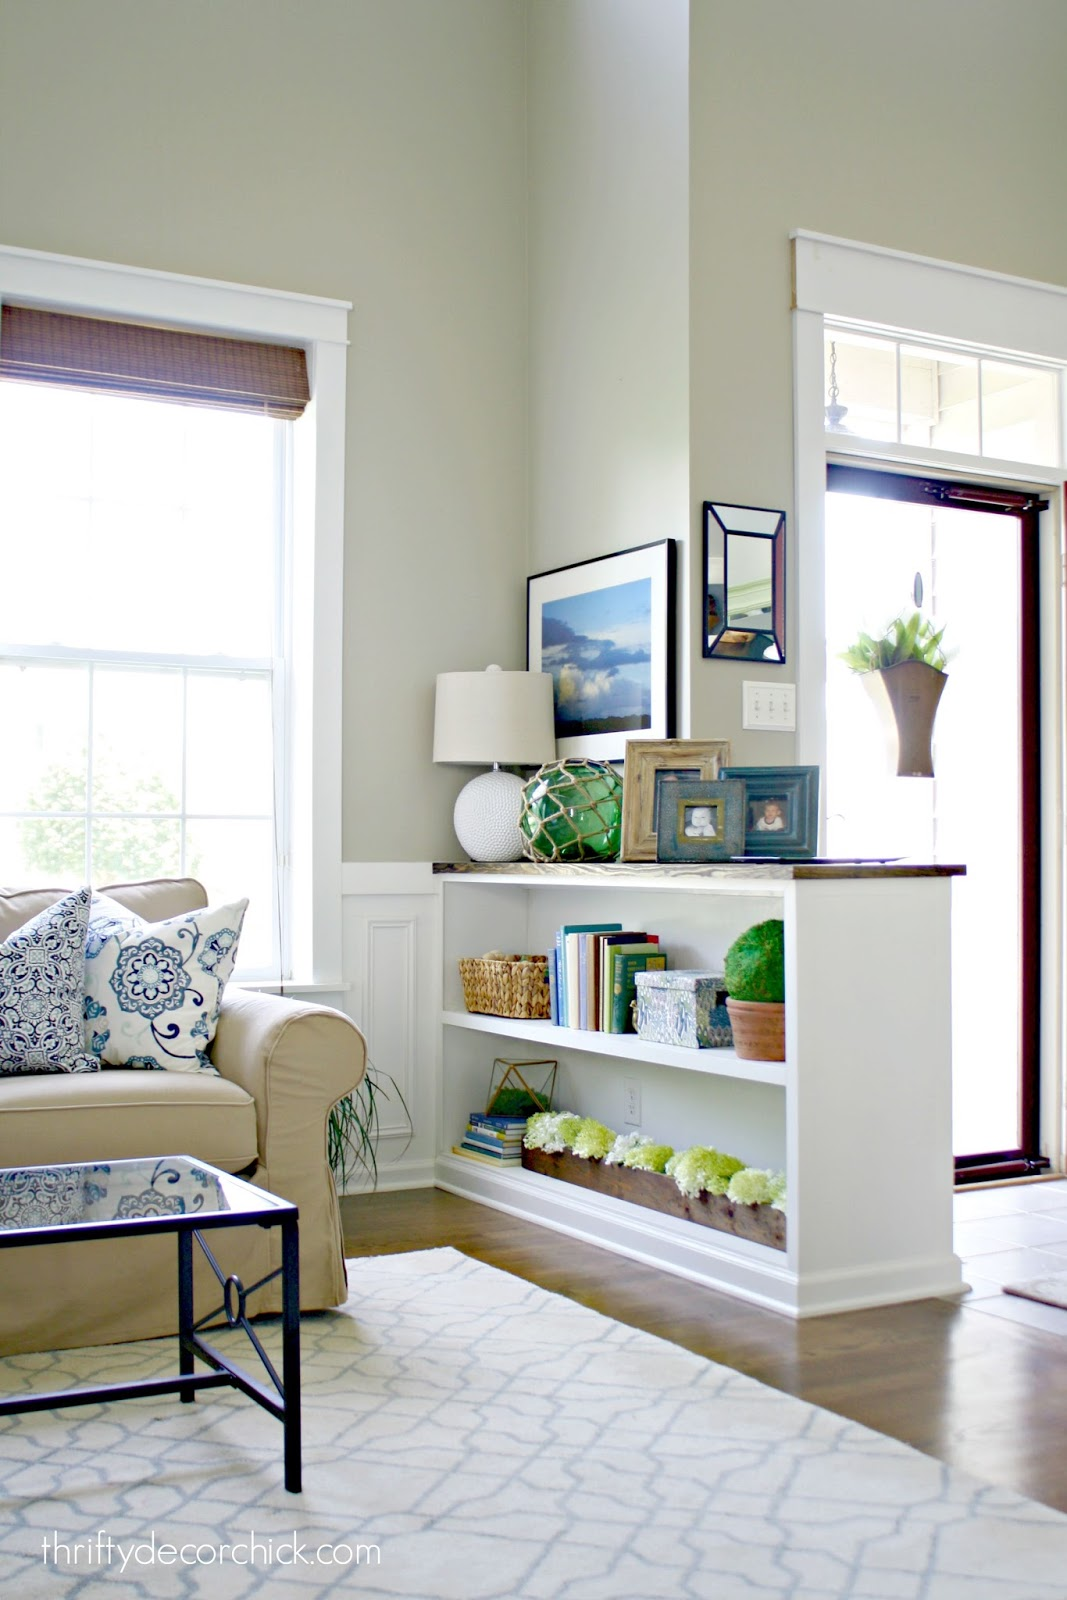 How To Build A Half Wall With Built In Shelves